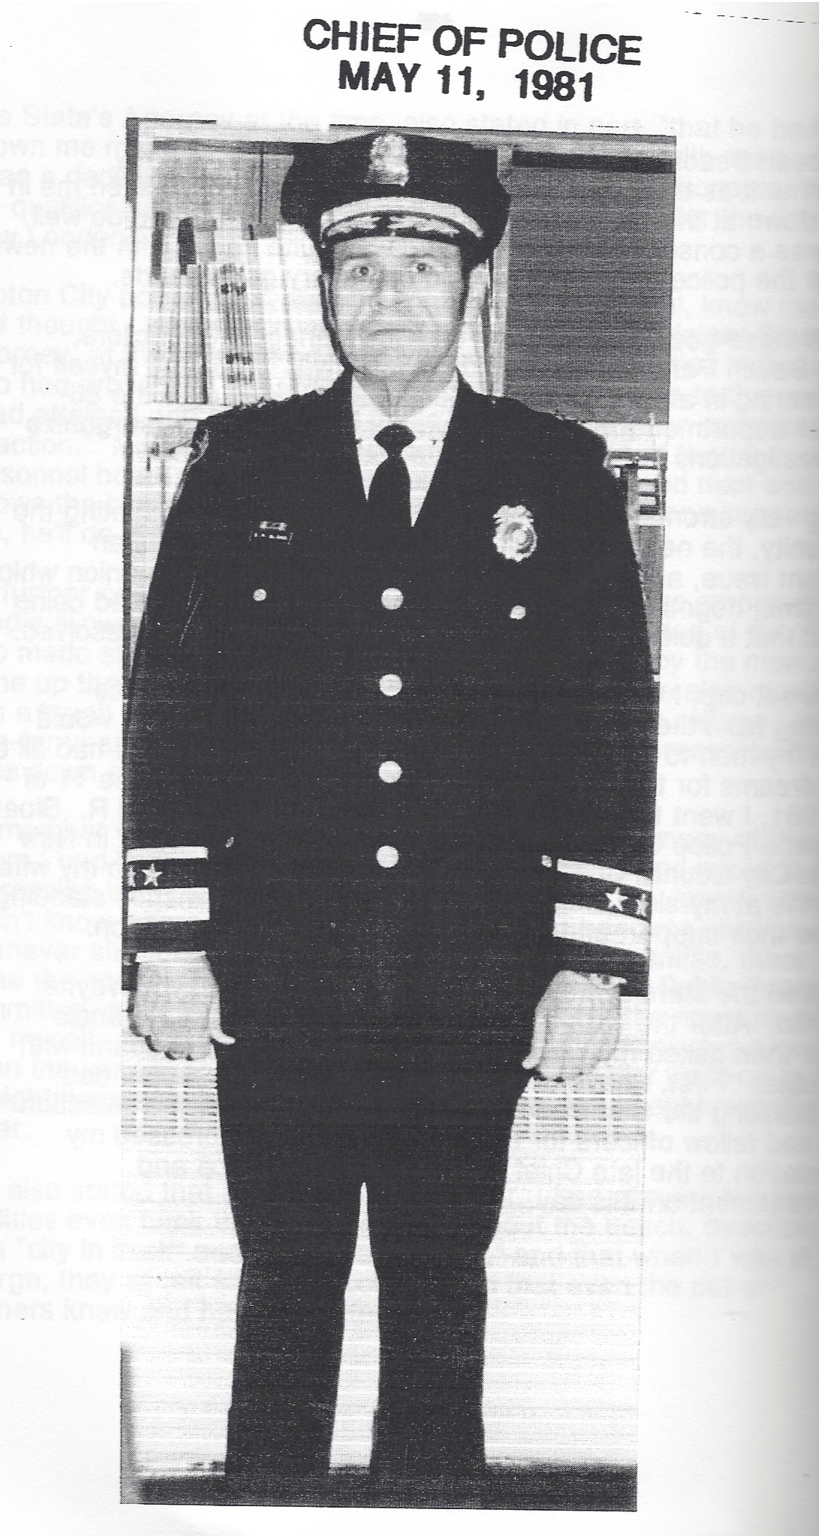 Sloan became New London's chief after 30+ years as both a beach cop and a street cop. (Credit: All images from  My Journey from Beach Cop to Police Chief )